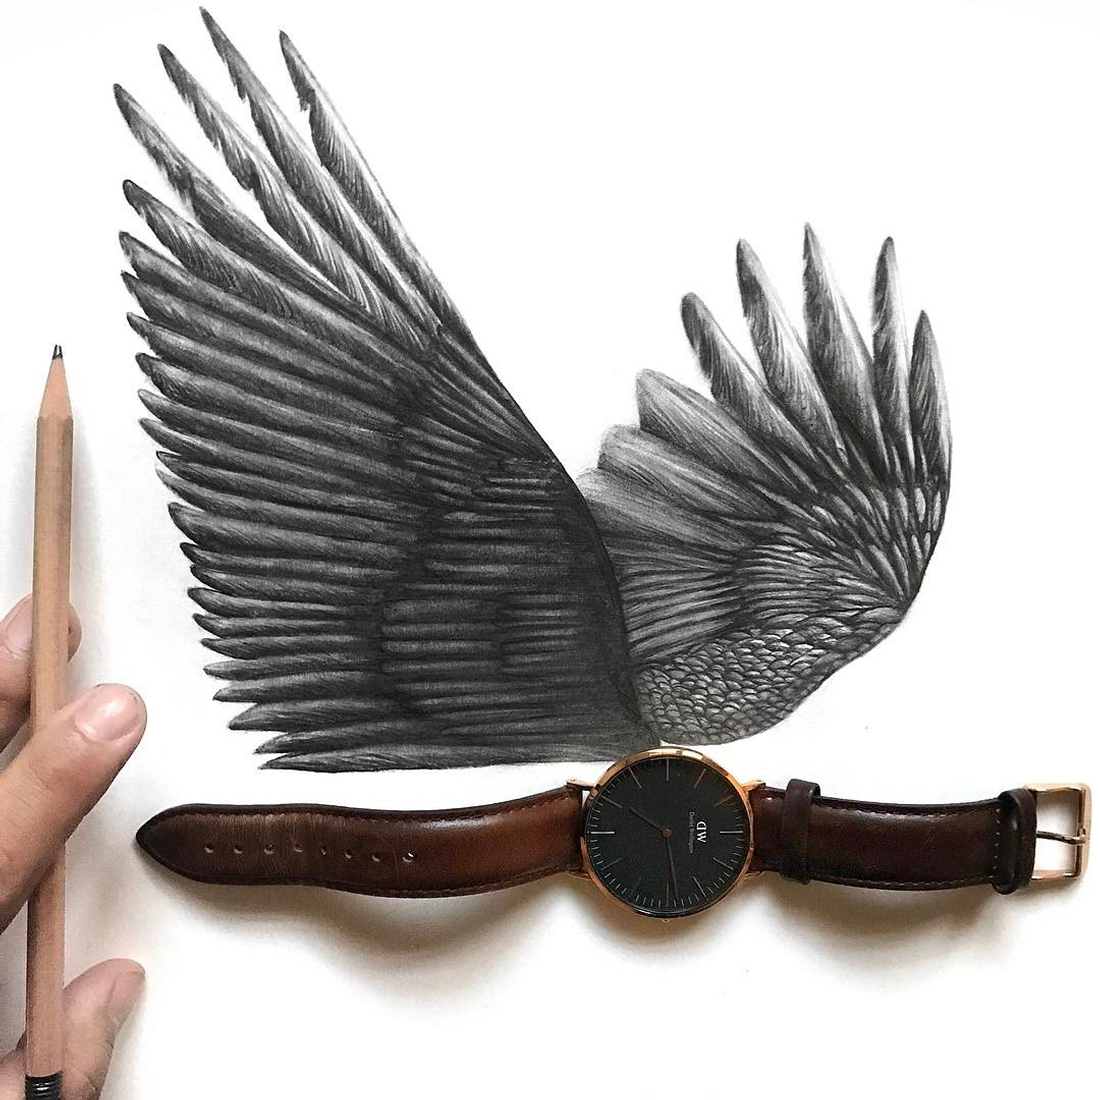 14-The-Wings-of-Time-Jonathan-Martinez-Realistic-Pencil-Animal-Drawings-www-designstack-co